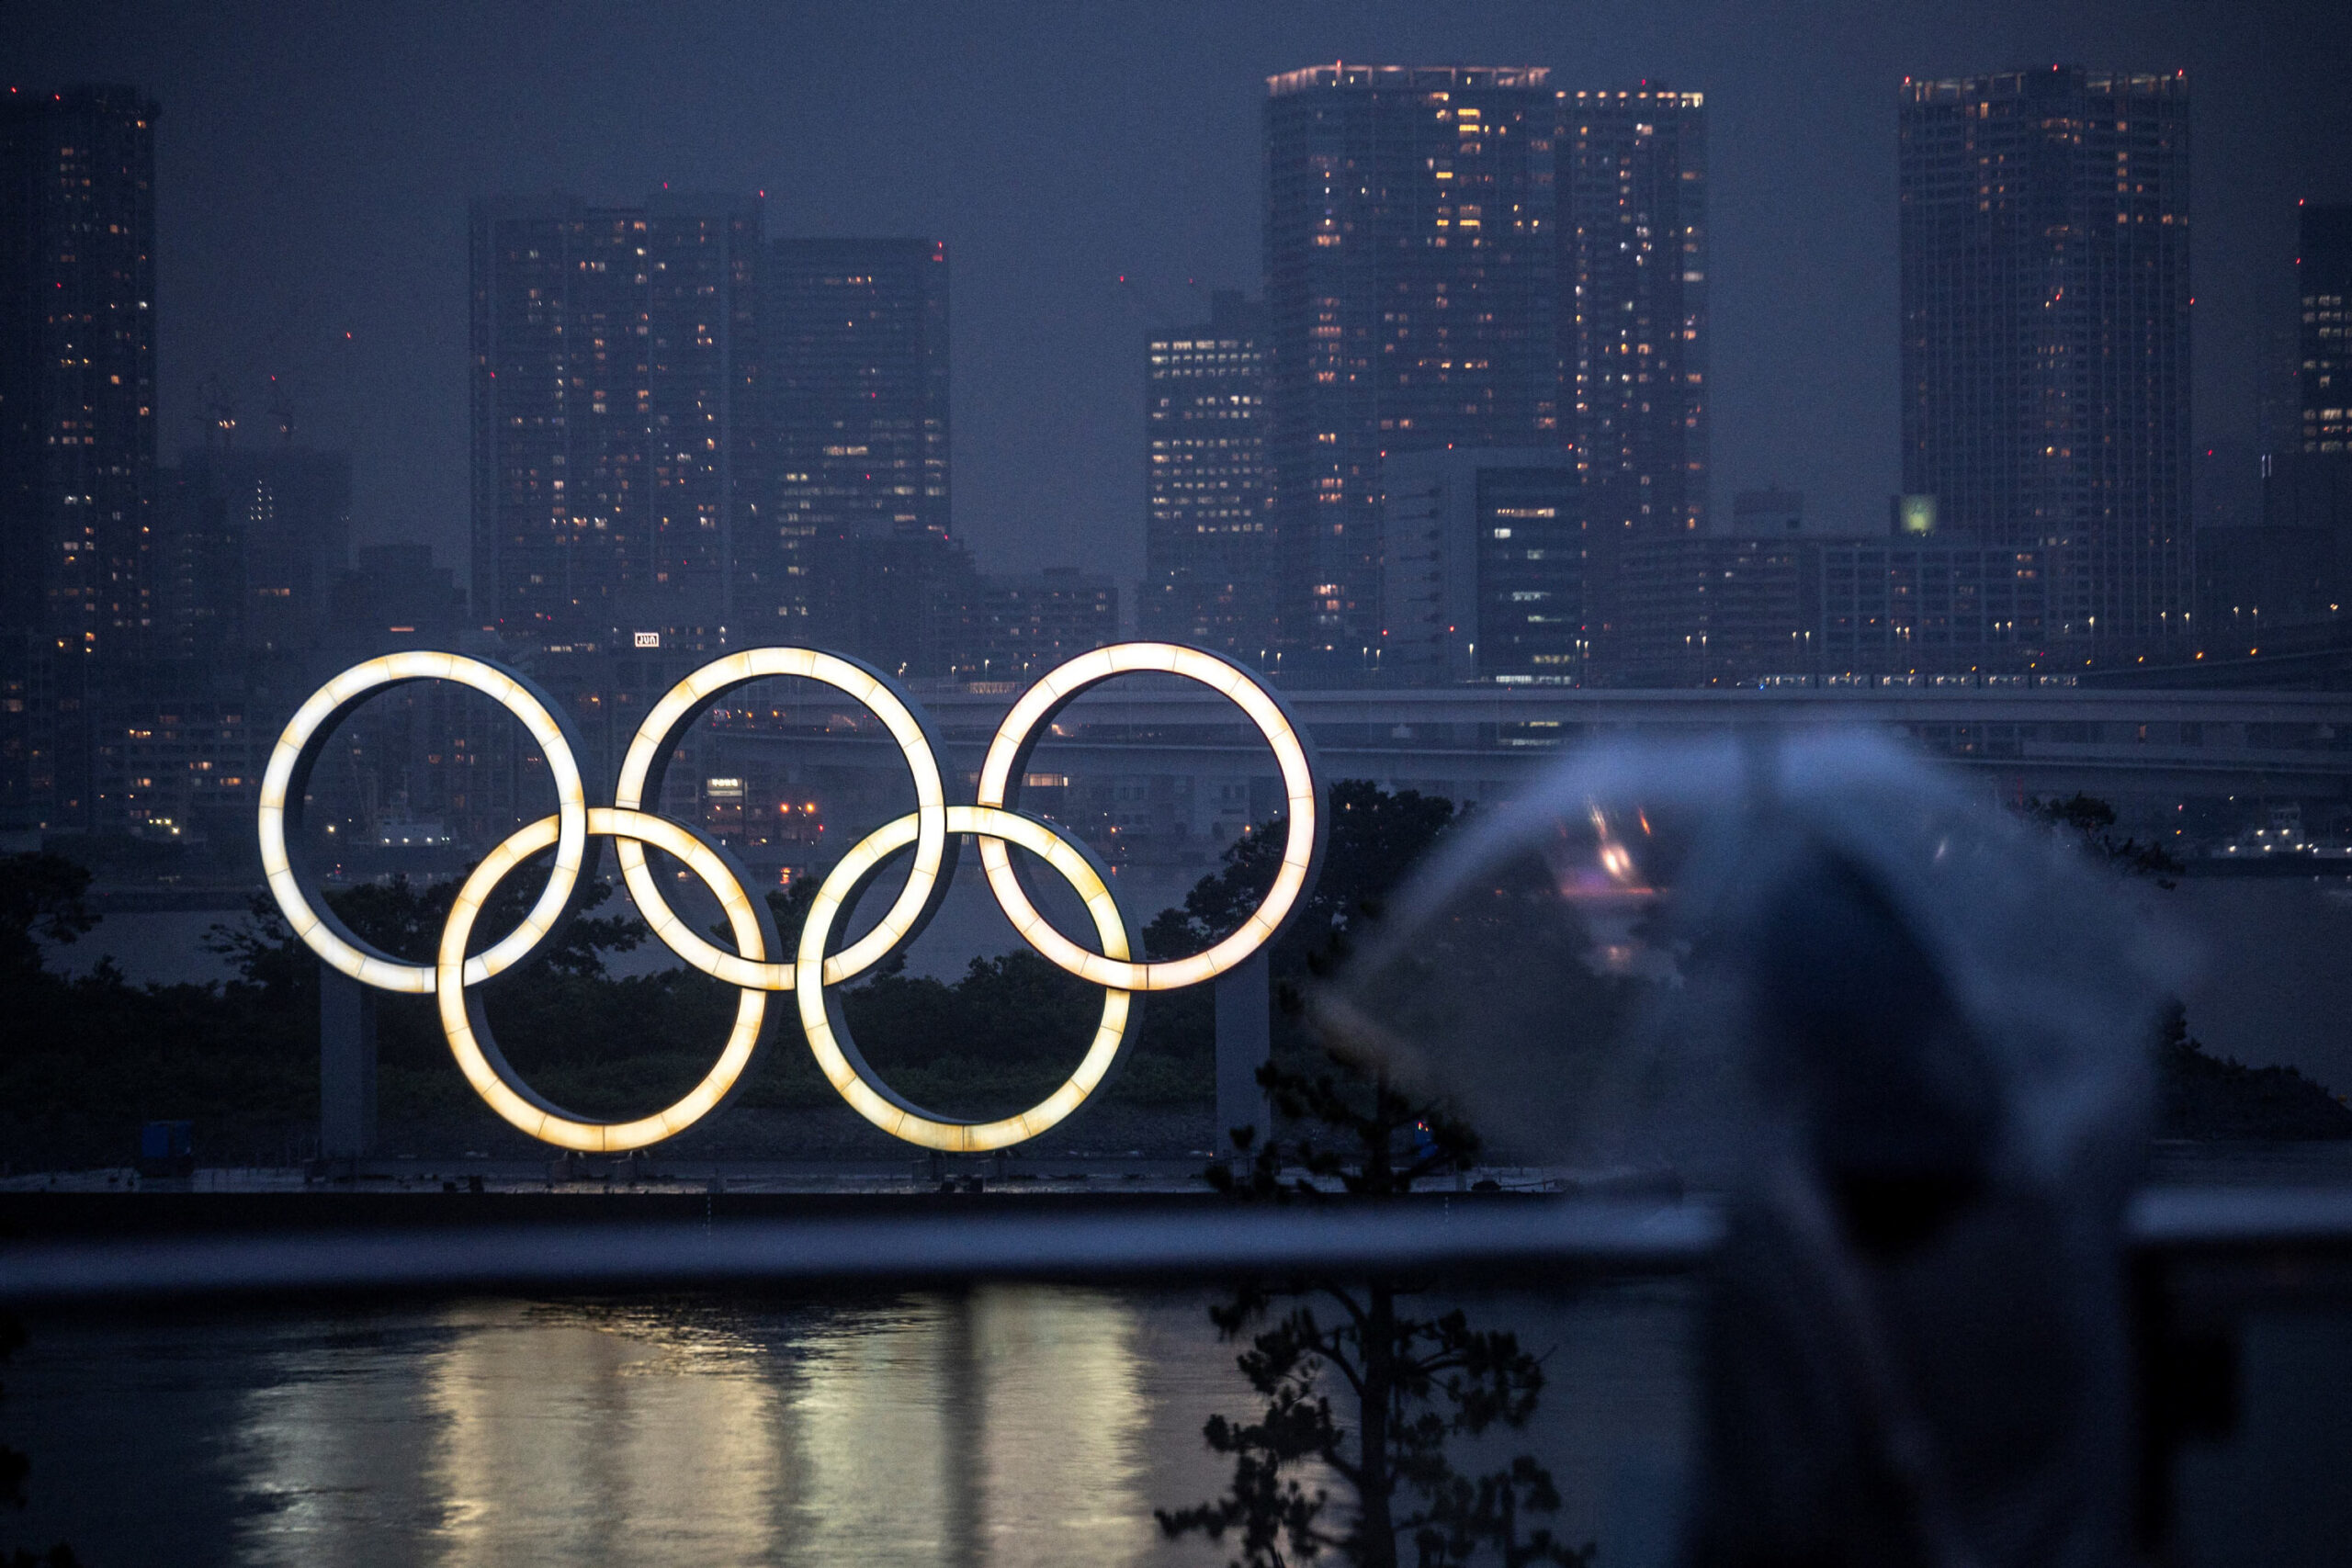 <i>CHARLY TRIBALLEAU/AFP/Getty Images</i><br/>A woman walks past the Olympic Rings lit up at dusk in the rain